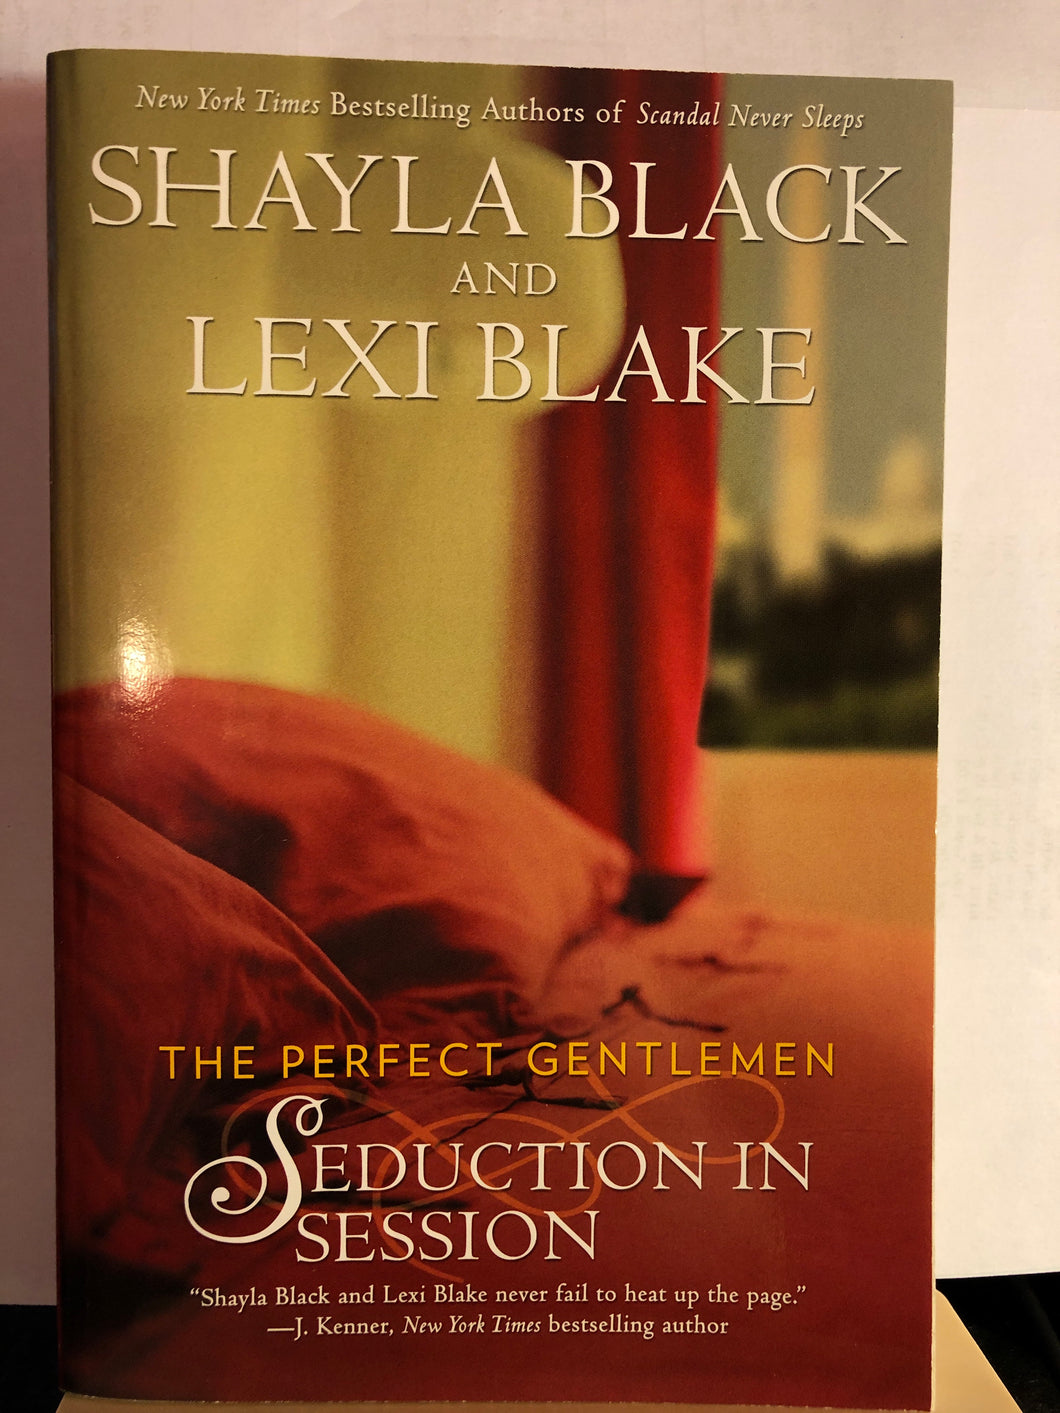 Seduction in Session     by Shayla Black, Lexi Blake      (The Perfect Gentlemen #2)